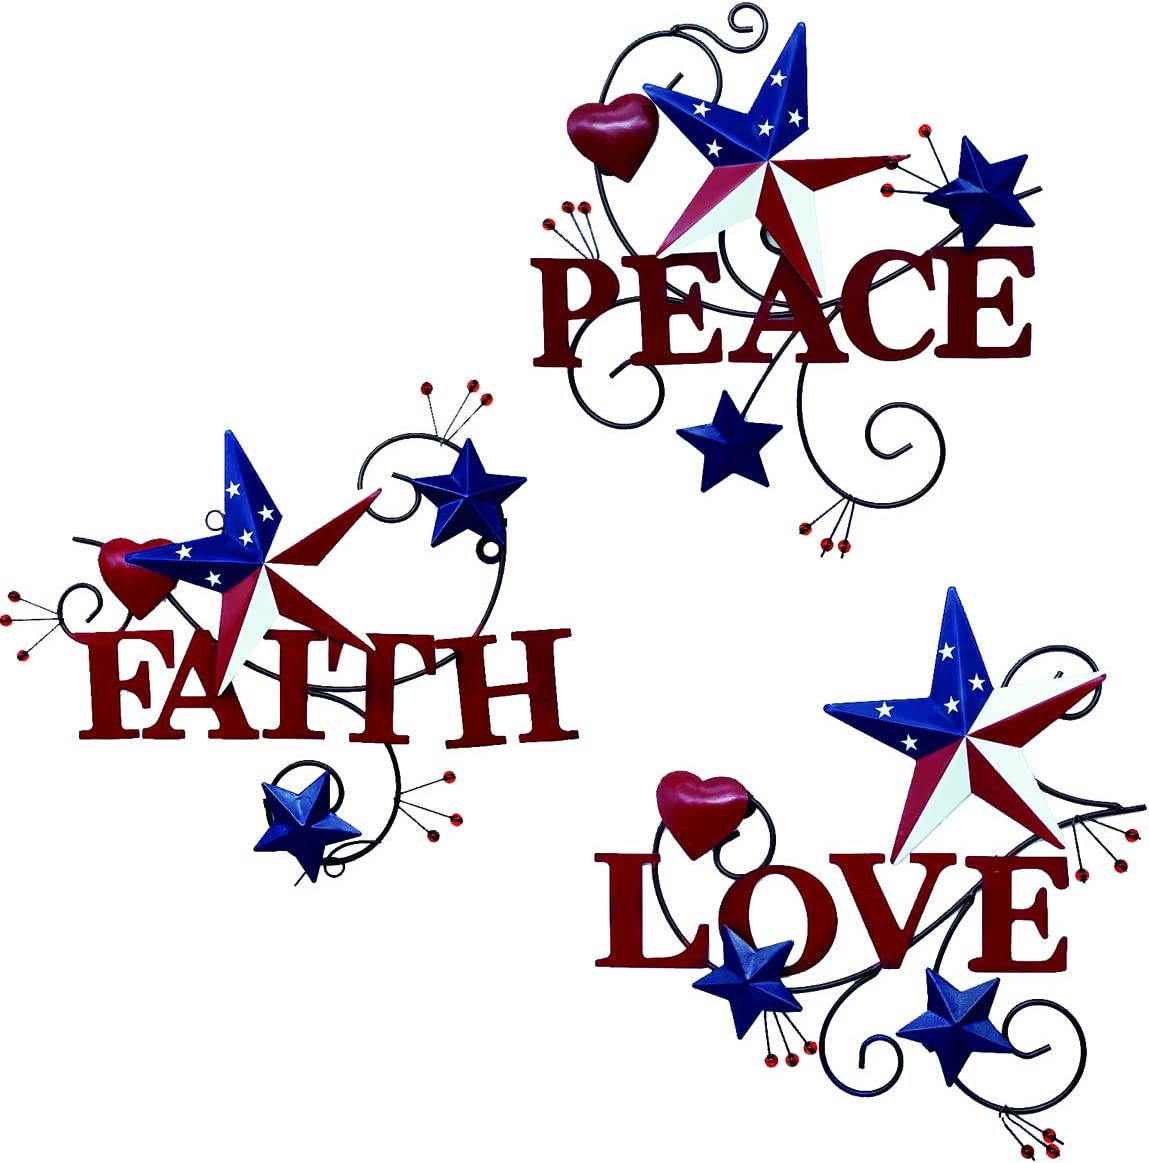 Amazon Com 4homemax Primitive Country Metal Hanging Wall Art Sculpture Hearts And Americana Stars With Love Peace Faith Set Of 3 July 4th Patriotic Indoor Outdoor Decor Everything Else